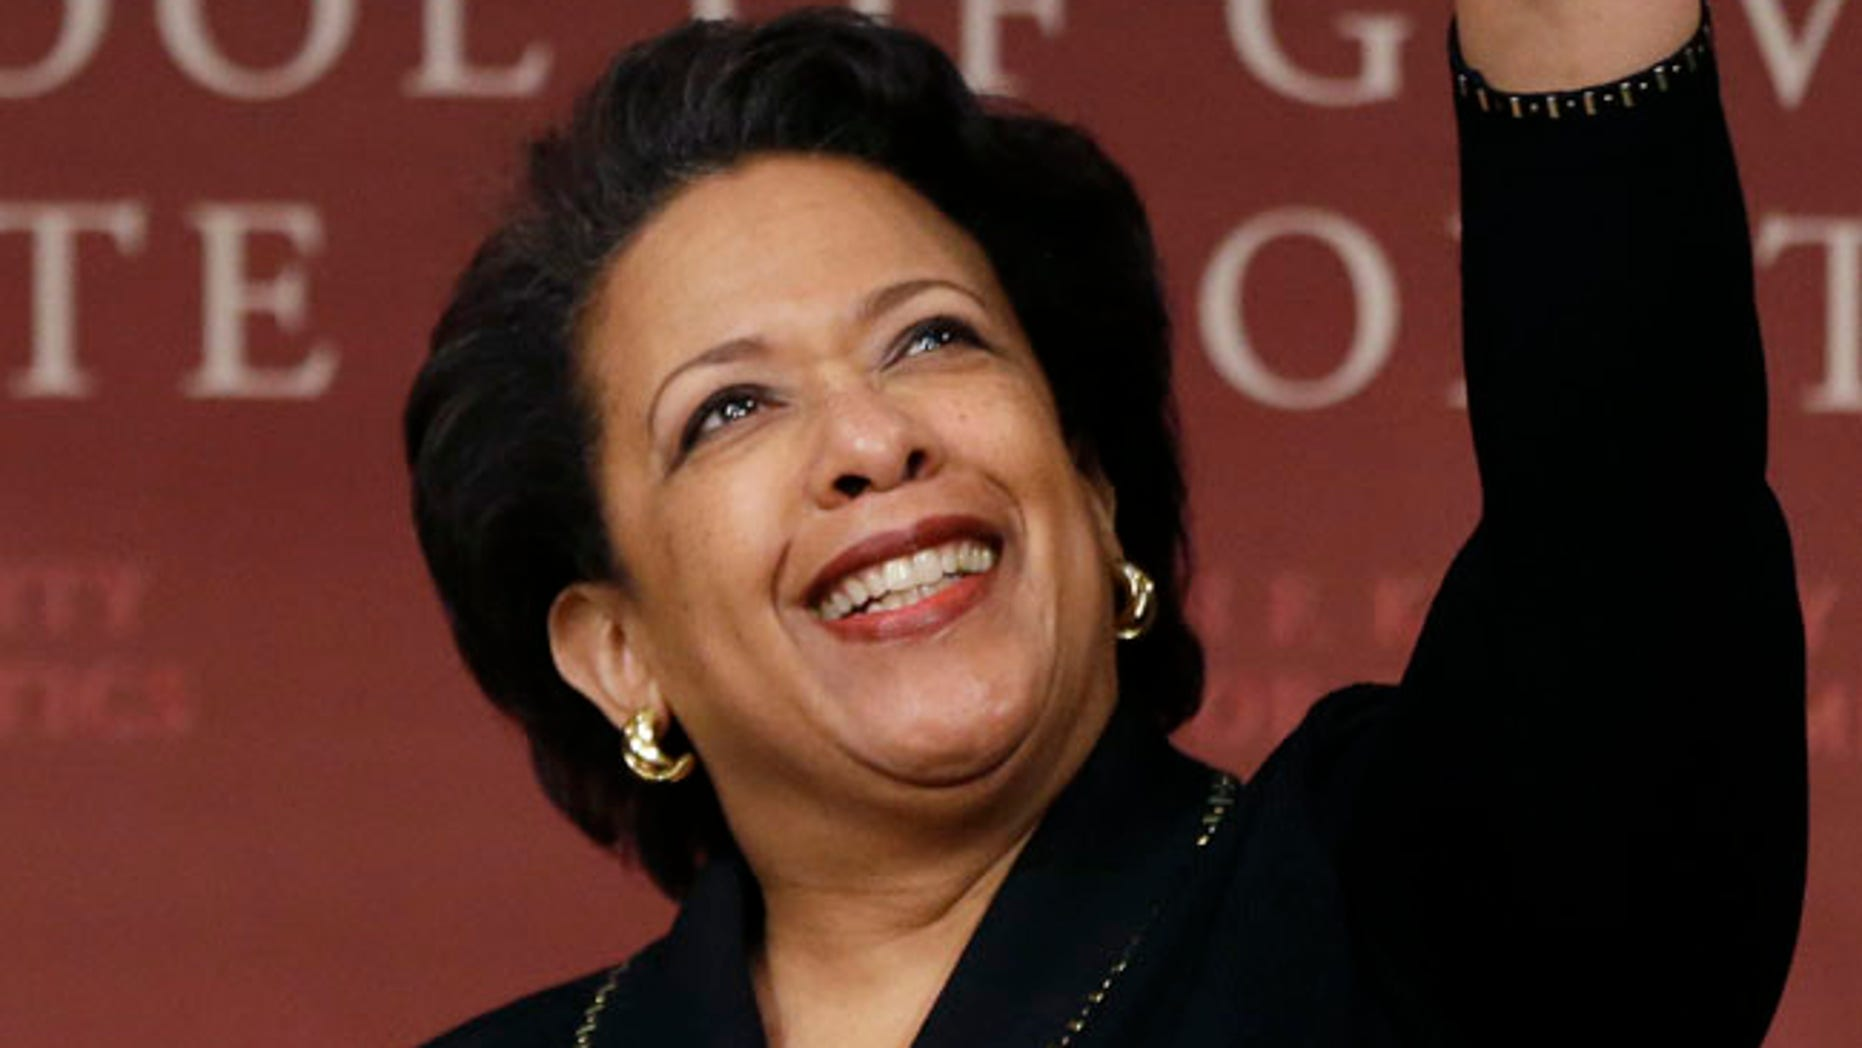 Former U.S. Attorney General Loretta Lynch, the nation's first black woman to head the Justice Department, waves as she arrives to speak at a conference on policy and blacks at Harvard University's Kennedy School of Government, Friday, April 7, 2017, in Cambridge, Mass. The 57-year-old North Carolina native graduated from Harvard College in 1981 and from Harvard Law School in 1984. (AP Photo/Elise Amendola)